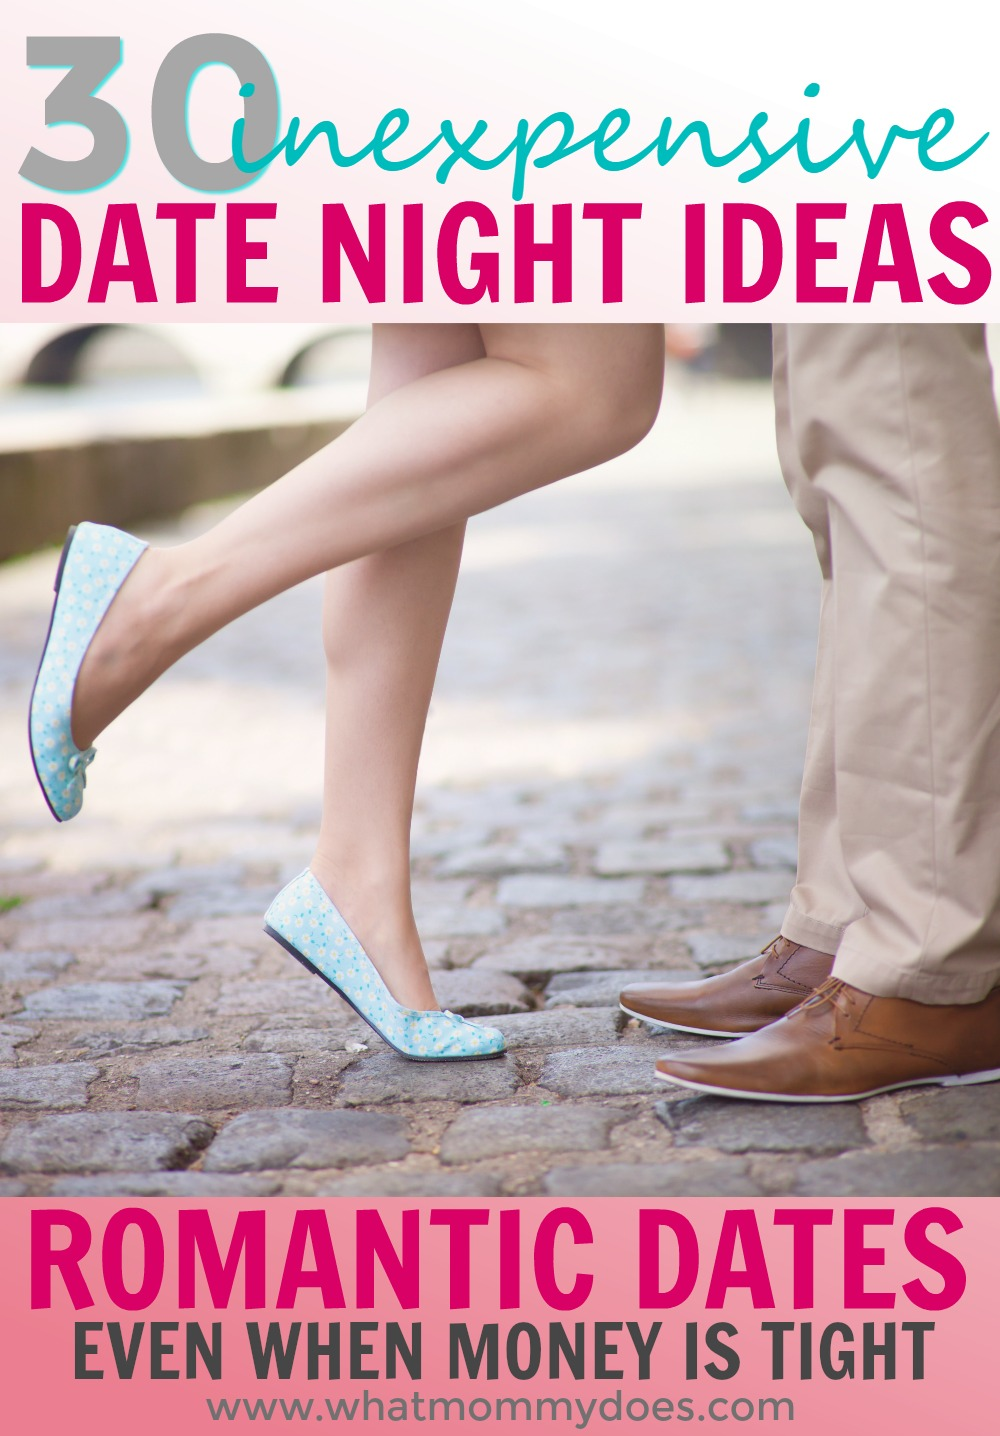 Looking for romatnic date night ideas that won't break the bank? You can still go on creative dates with your husband…at home or out on the town…you just need to get creative! These are great for Valentine's Day date nights, too! | fun date ideas for a small budget!